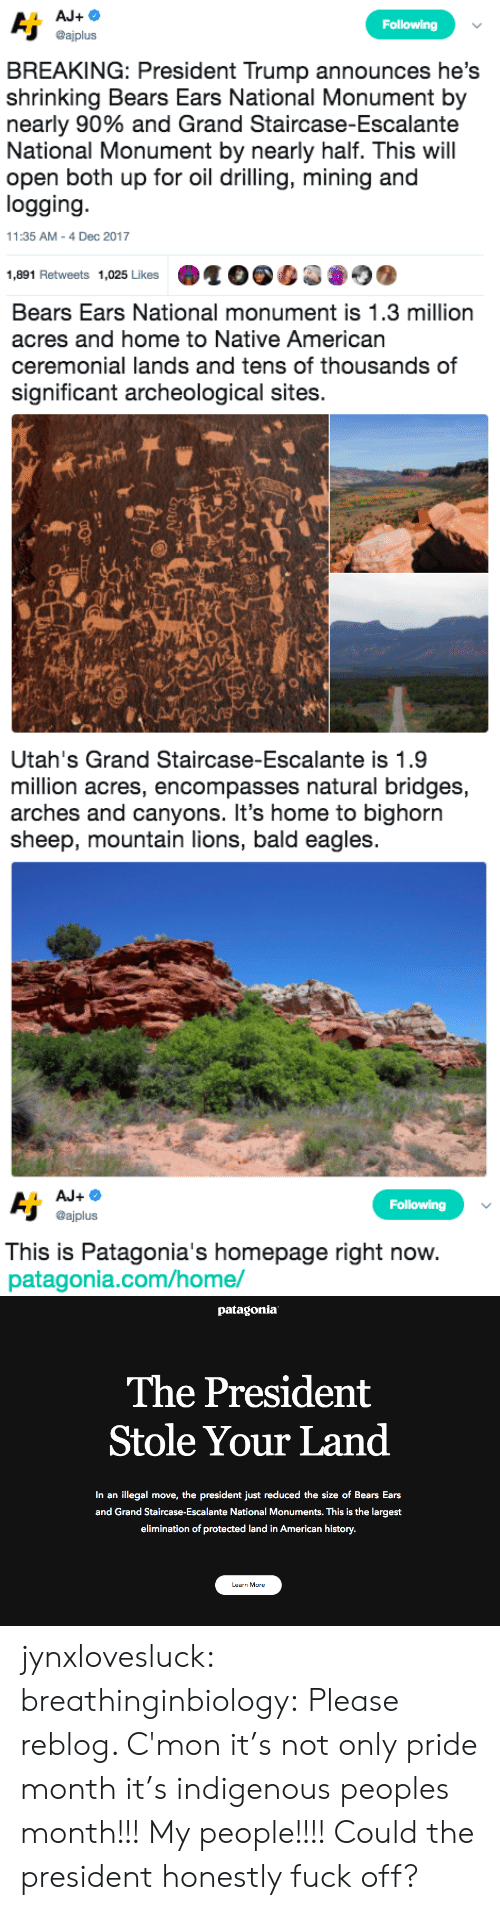 Philadelphia Eagles, Native American, and Tumblr: Following  @ajplus  BREAKING: President Trump announces he's  shrinking Bears Ears National Monument by  nearly 90% and Grand Staircase-Escalante  National Monument by nearly half. This will  open both up for oil drilling, mining and  logging  11:35 AM-4 Dec 2017  1,891 Retweets 1,025 Likes   Bears Ears National monument is 1.3 million  acres and home to Native American  ceremonial lands and tens of thousands of  significant archeological sites.  sh   Utah's Grand Staircase-Escalante is 1.9  million acres, encompasses natural bridges,  arches and canyons. It's home to bighorn  sheep, mountain lions, bald eagles   Following  @ajplus  This is Patagonia's homepage right now  patagonia.com/home/   patagonia  The President  Stole Your Land  In an illegal move, the president just reduced the size of Bears Ears  and Grand Staircase-Escalante National Monuments. This is the largest  elimination of protected land in American history.  Learn More jynxlovesluck:  breathinginbiology: Please reblog.   C'mon it's not only pride month it's indigenous peoples month!!! My people!!!! Could the president honestly fuck off?